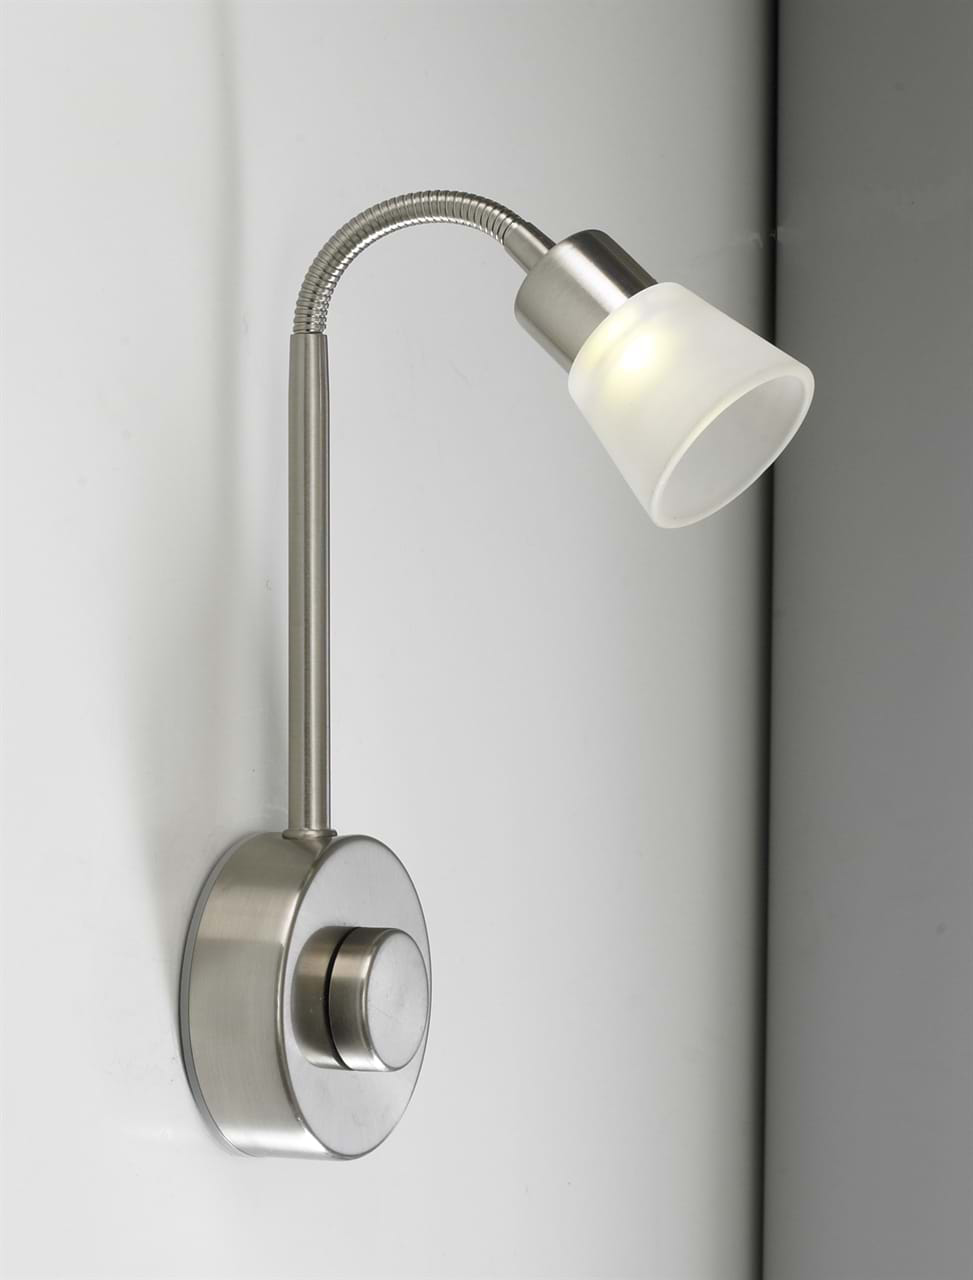 10W LED Dimmable Bedside Wall Light Fitting in Brushed Nickel SY71007